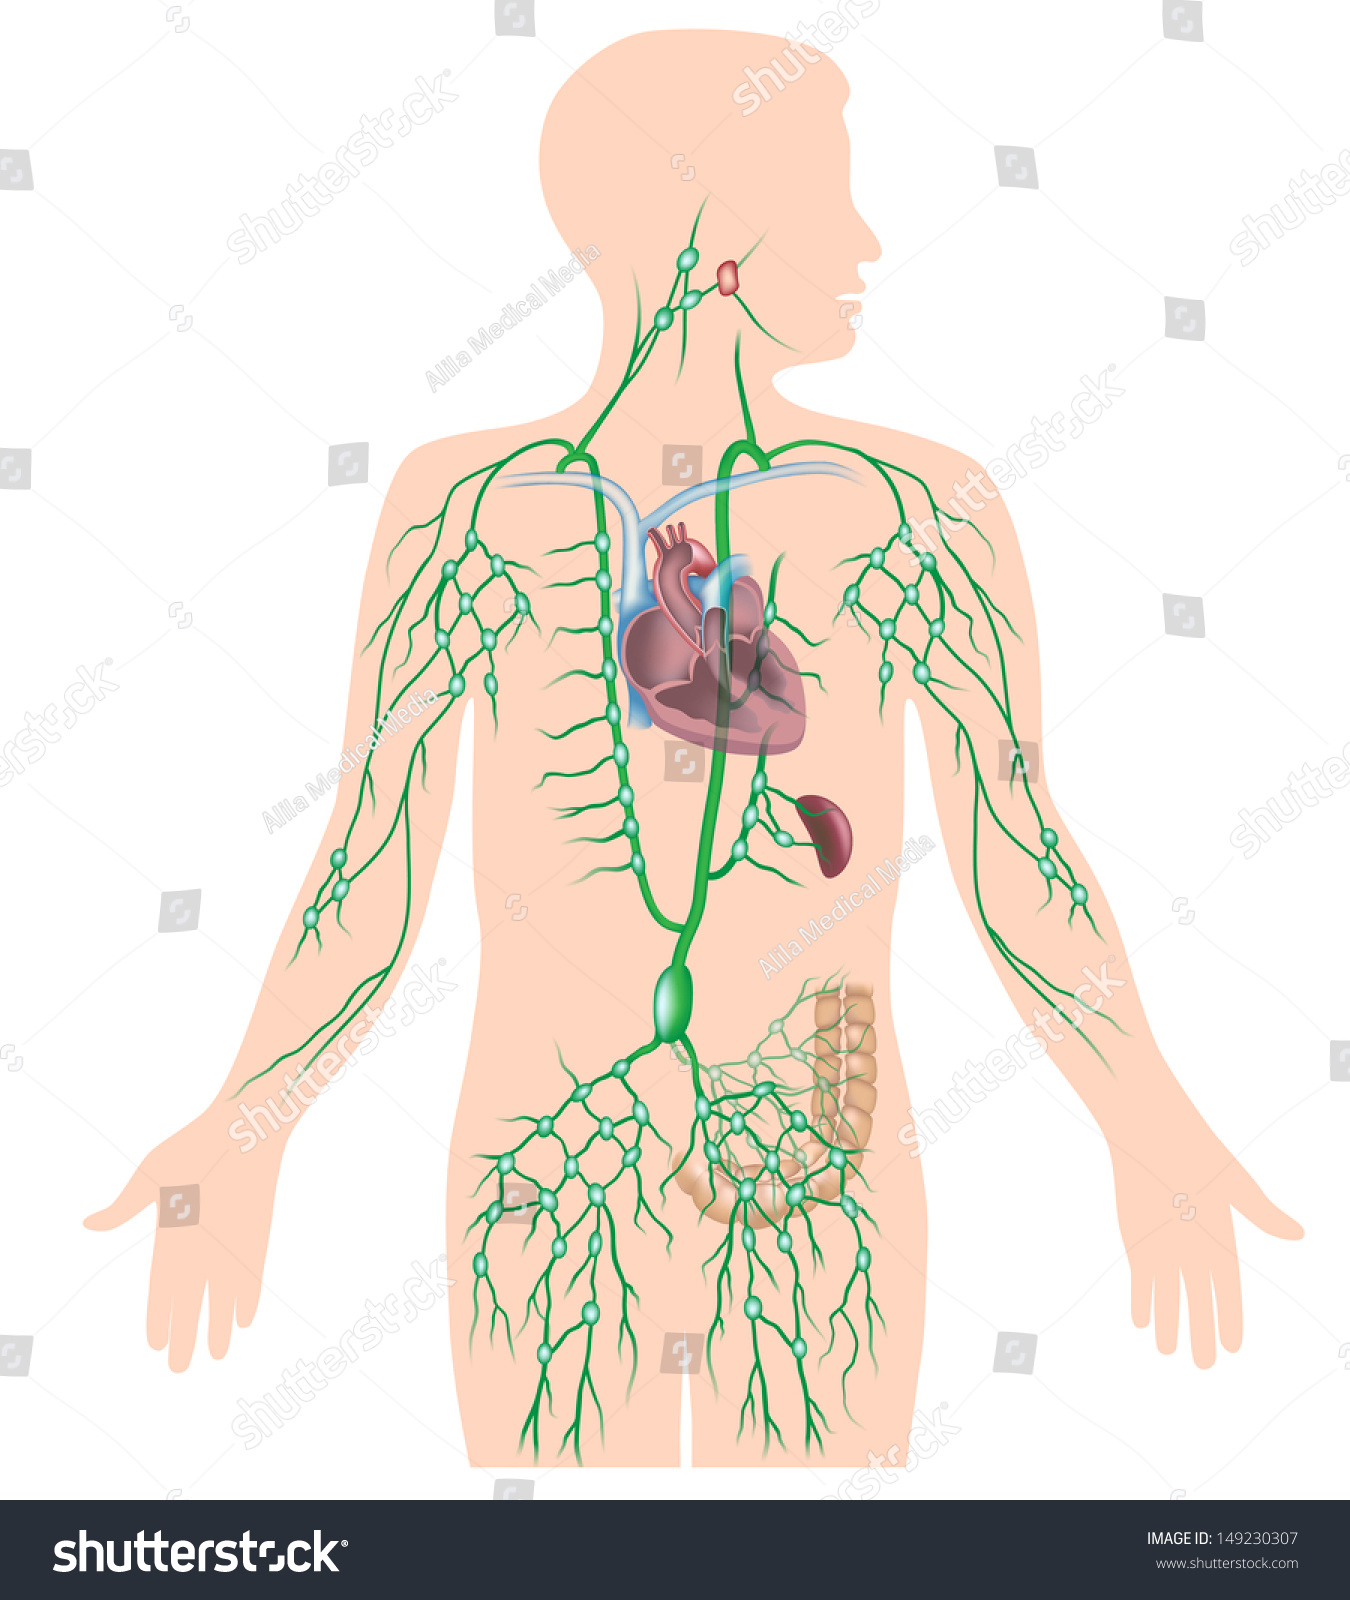 lymph circulation diagram motor control wiring diagrams lymphatic system unlabeled stock illustration